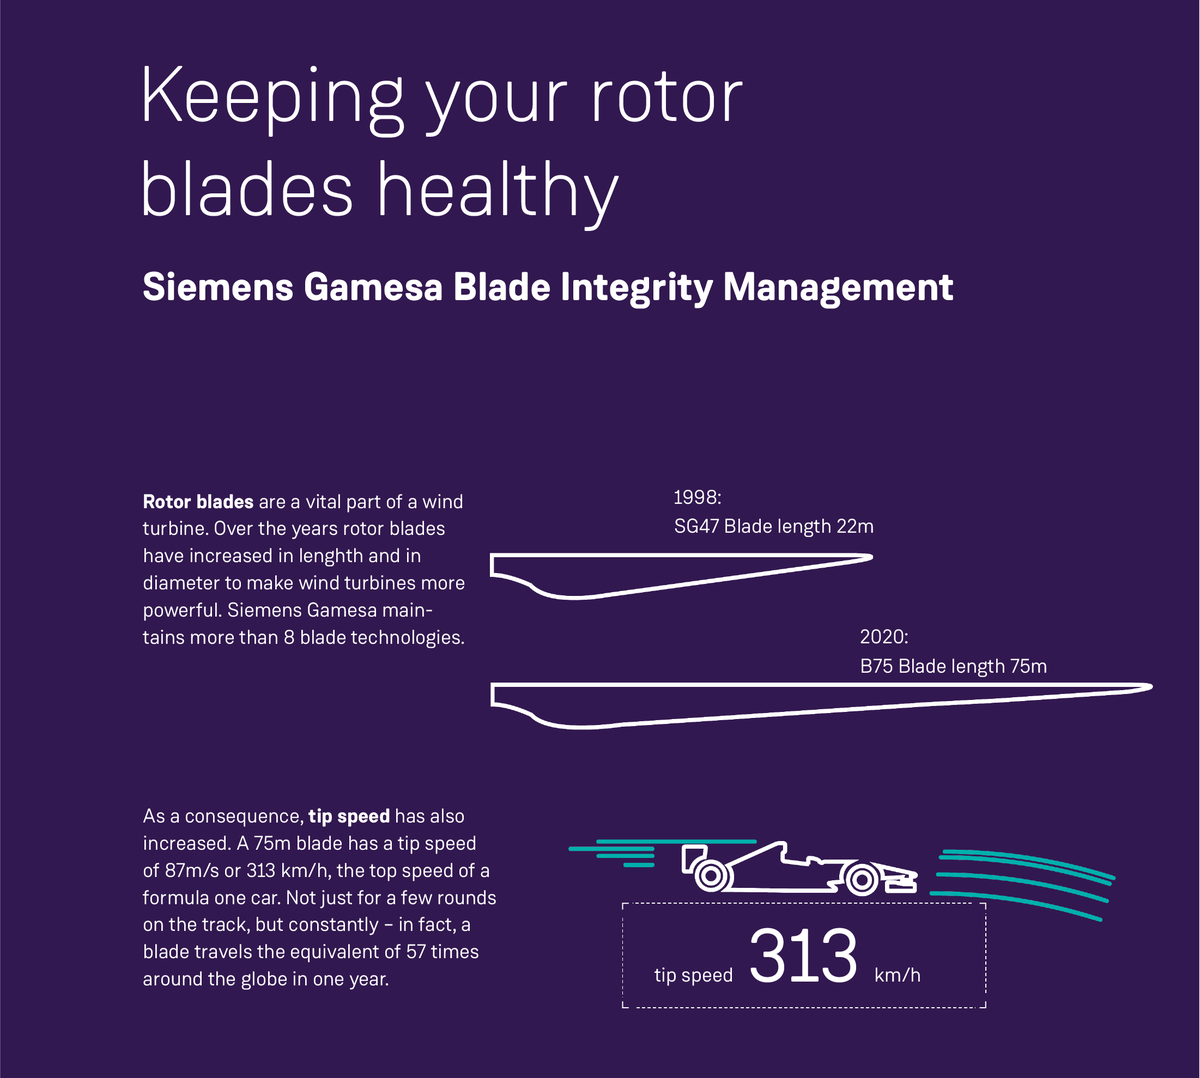 Looking to expert management of a crucial component's life and durability? Siemens Gamesa Blade integrity management provides cost effective and site optimized strategies for all needs to keep your blades turning and earning even more. #WindMotion